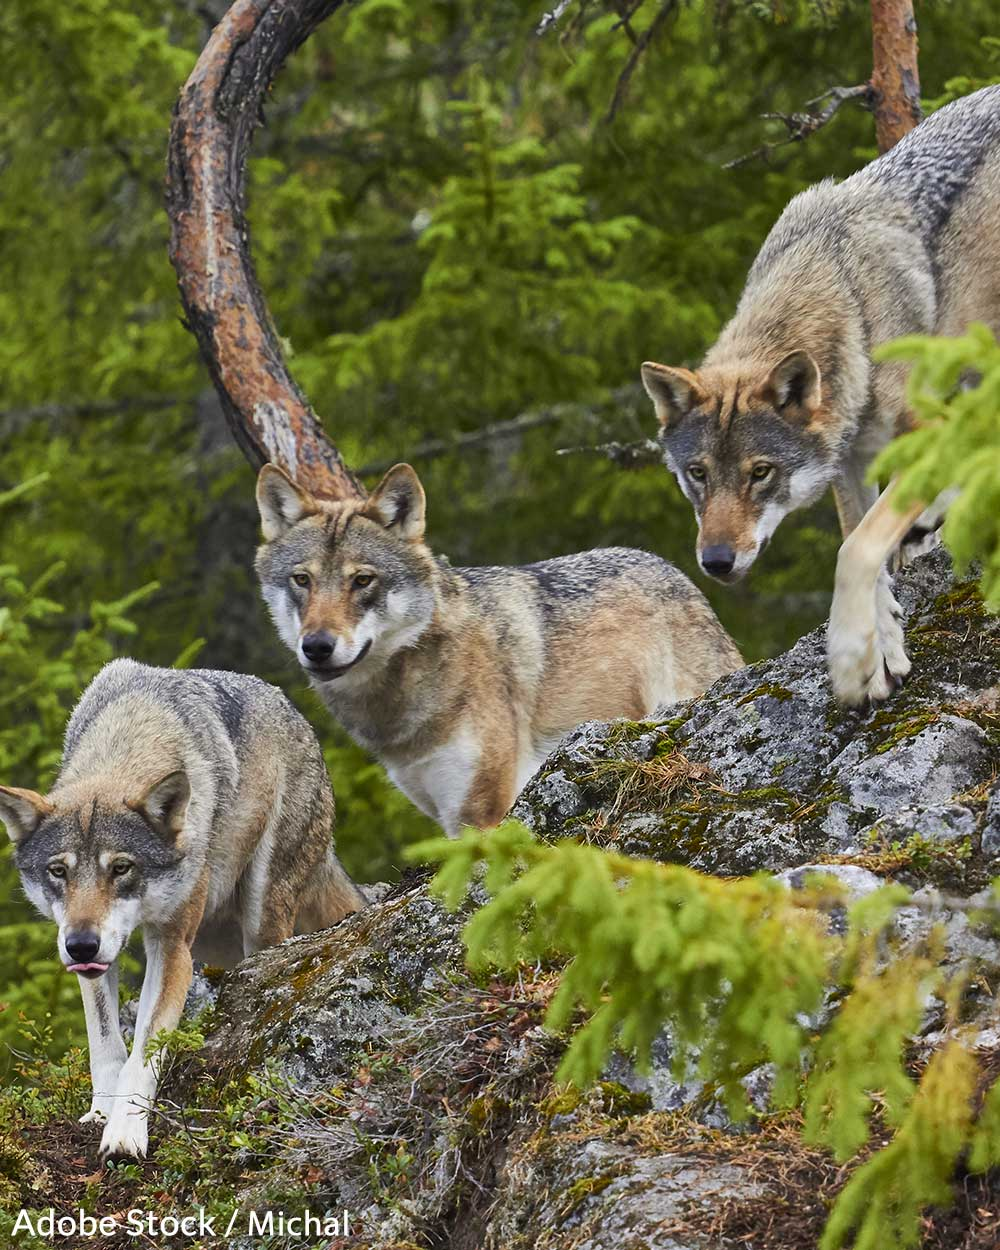 Idaho's planned wolf hunt has drawn ire from animal rights groups.